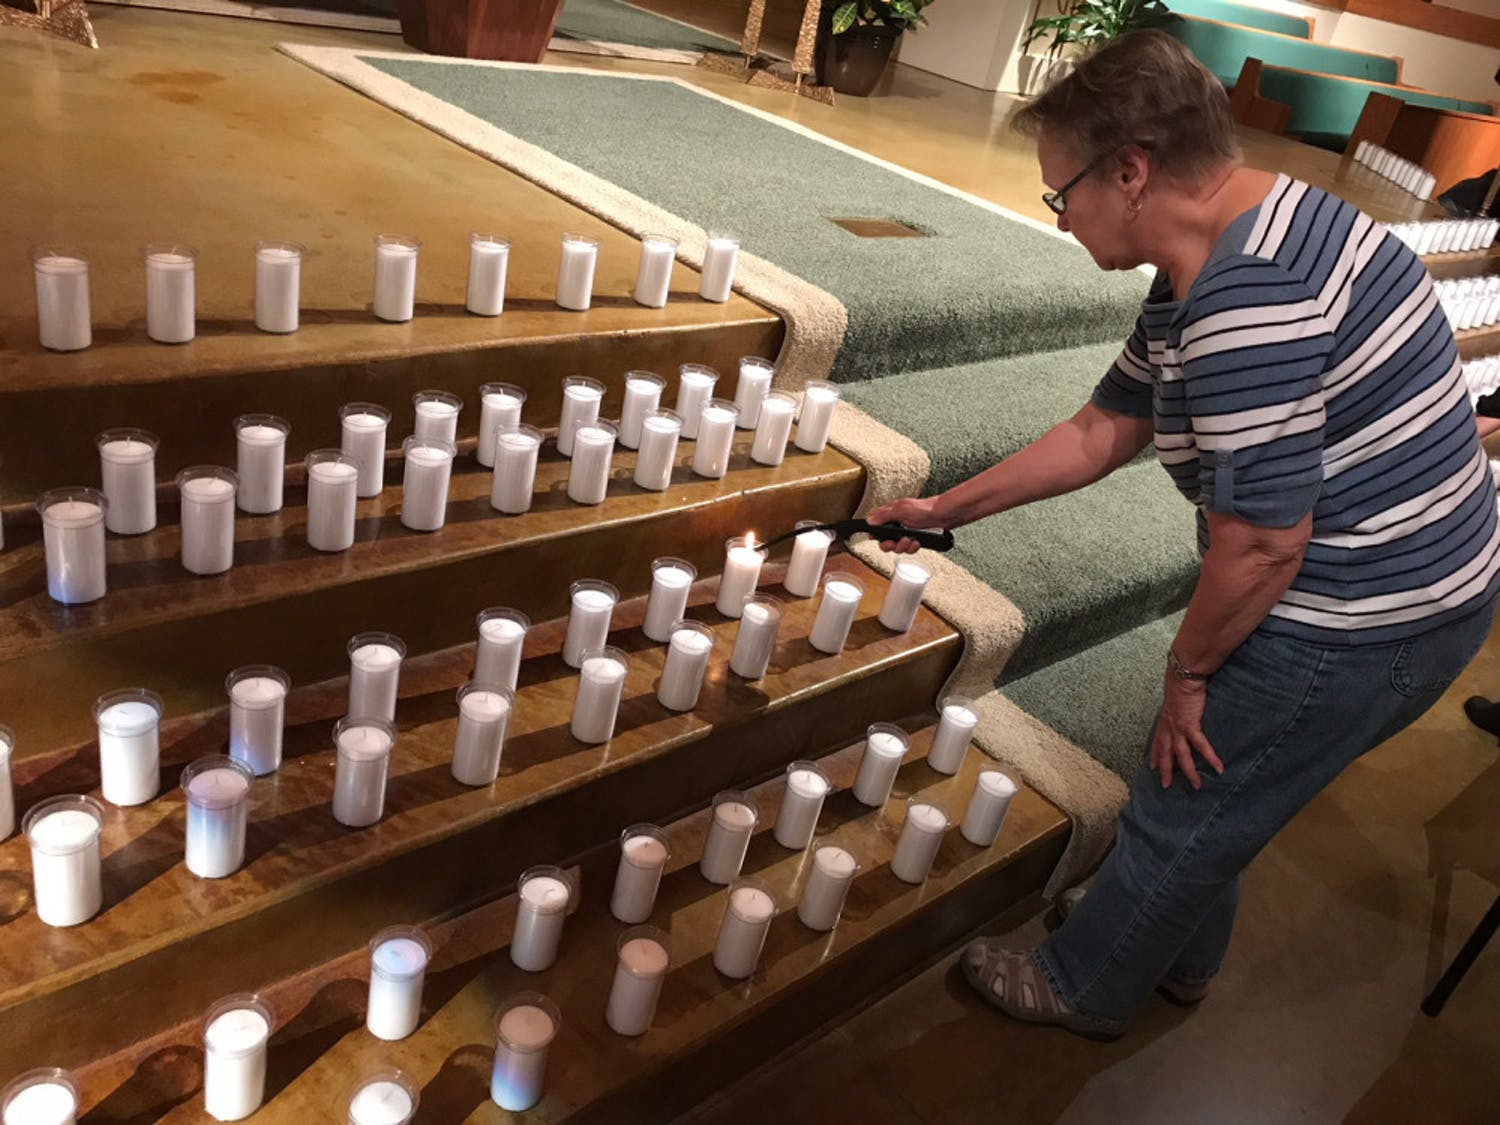 Susan Johnson bends to light one of the 352 candles in St. Patrick Catholic Church, located at 500 NE 16th Ave., on Thursday night. The candles, which represented the 352 inmates on death row in Florida, were part of the church's Cities for Life Day event.